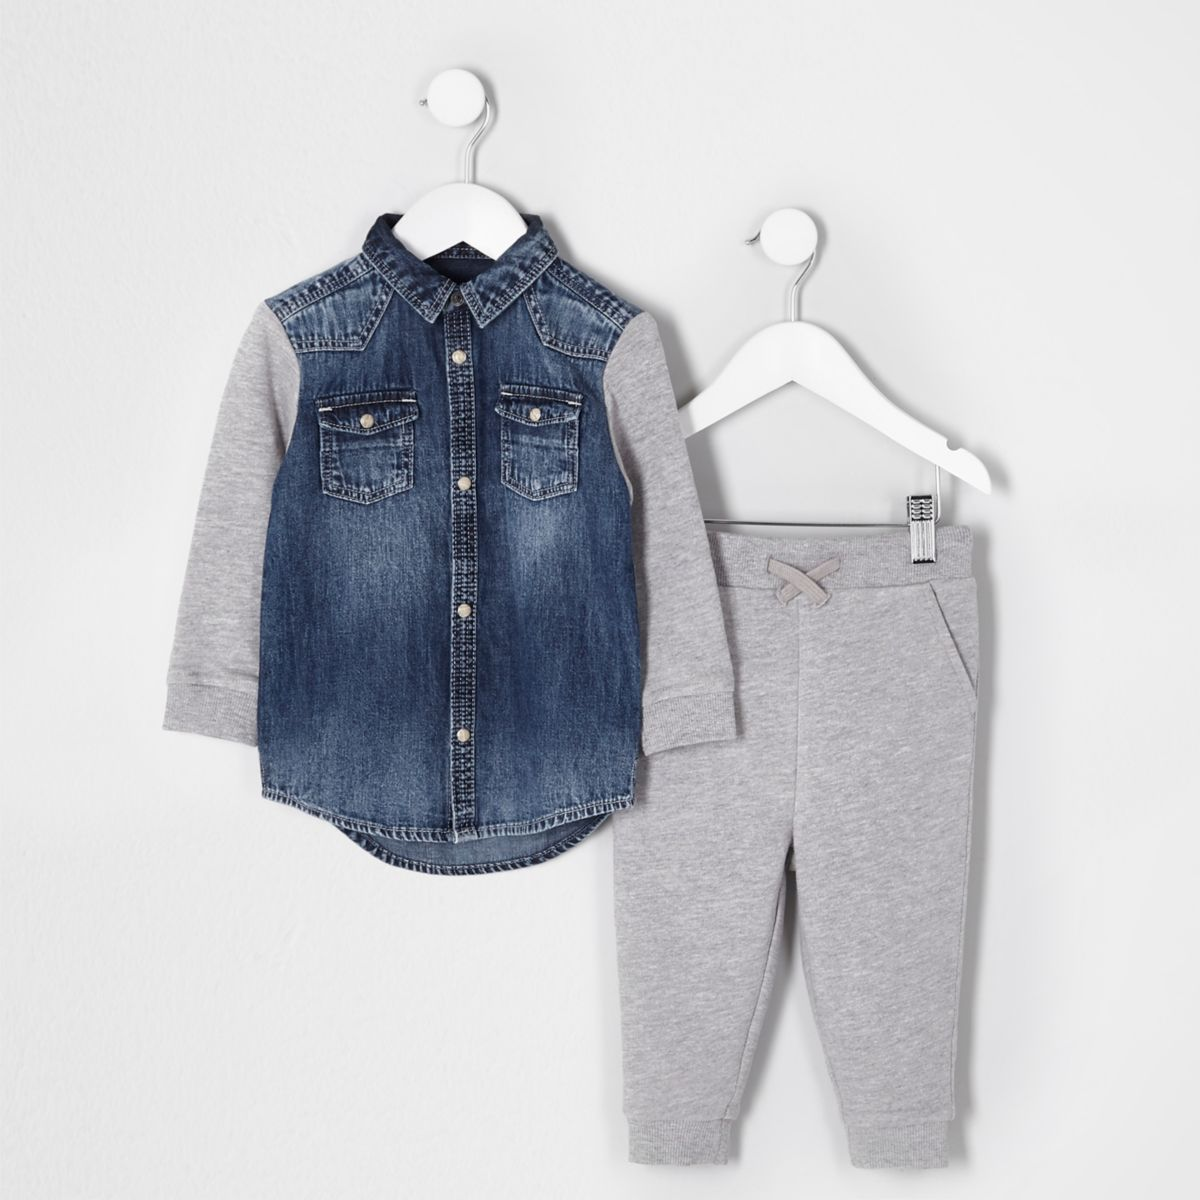 Mini boys grey denim and jersey jacket outfit - Baby Boys Outfits - Mini Boys - boys